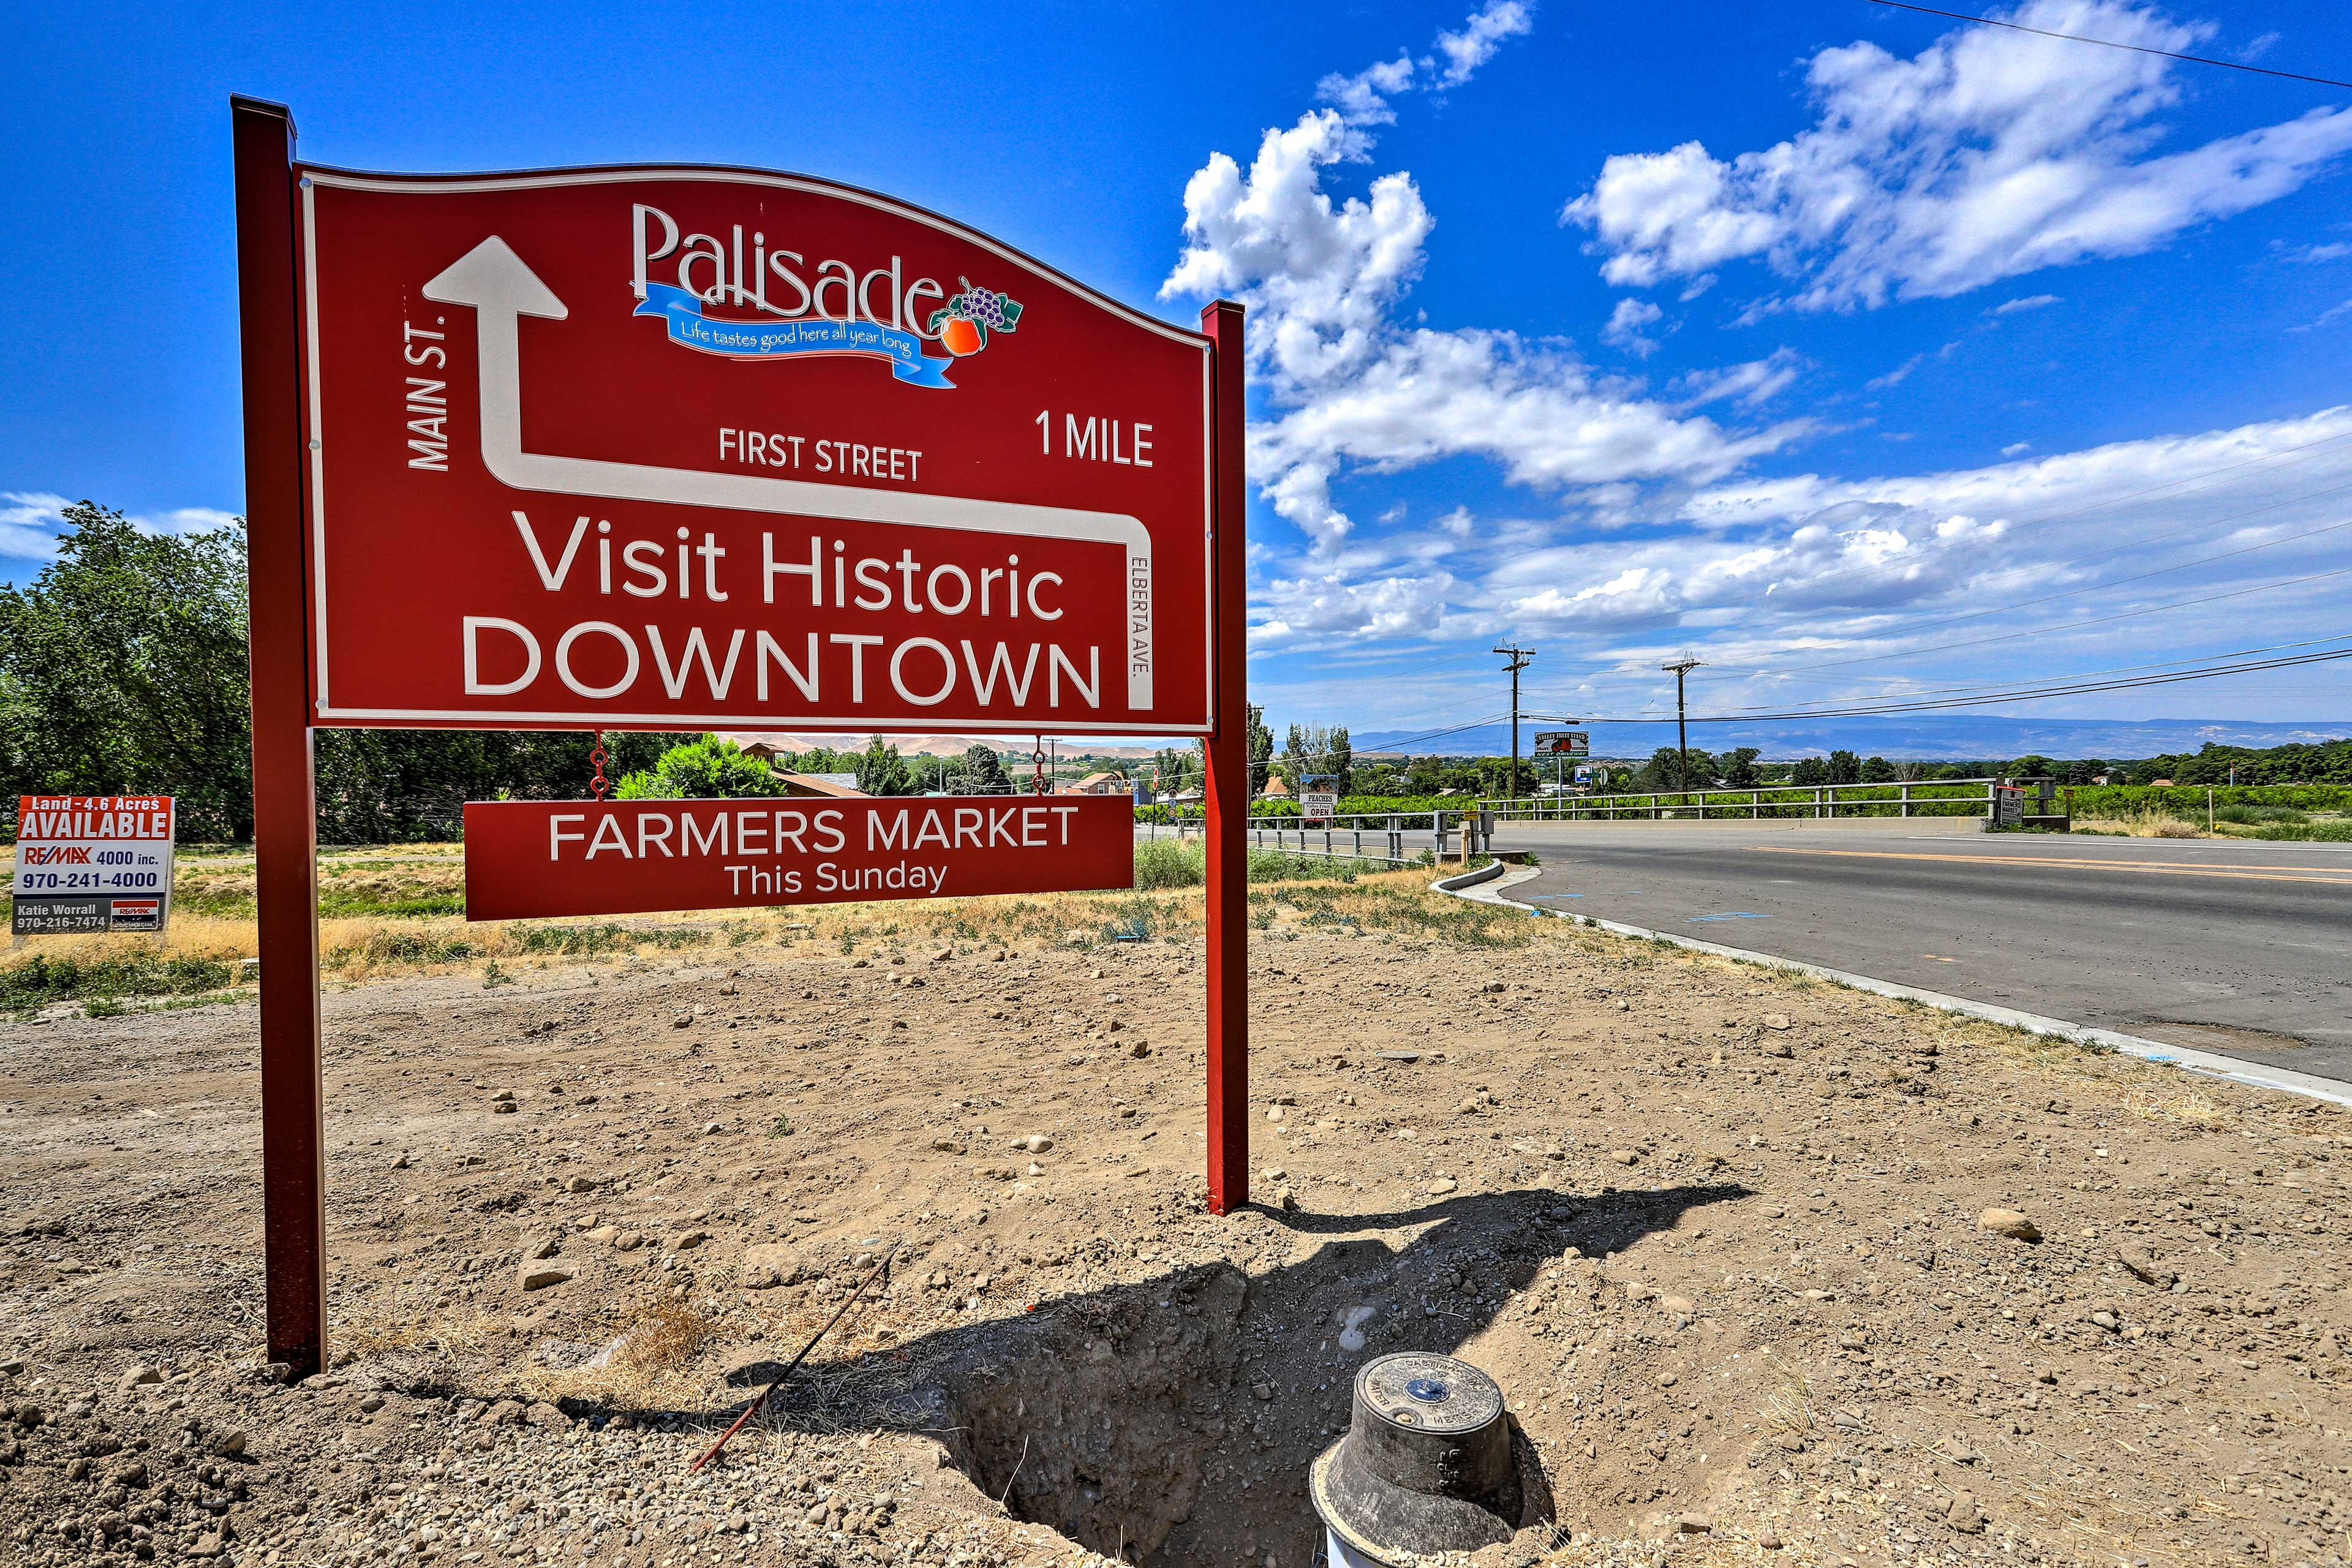 The Palisade farmers market is a must-see during your stay!